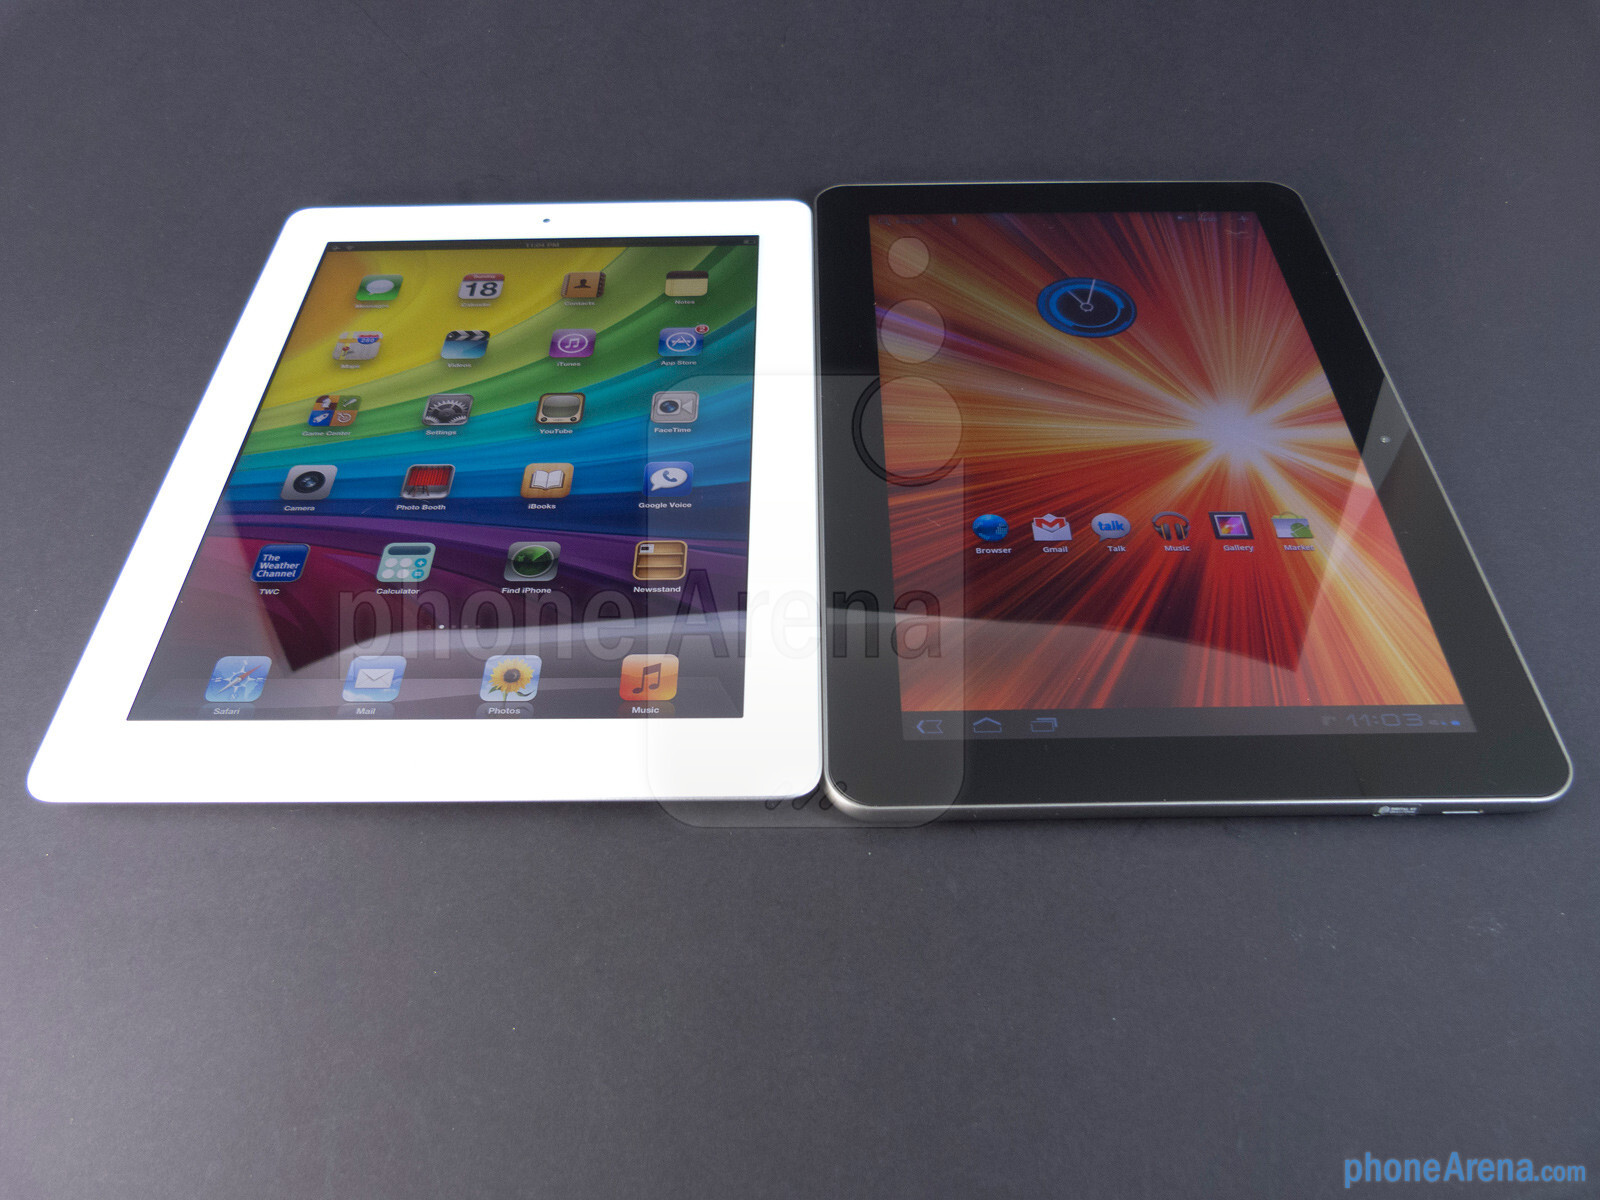 ... of the Apple iPad 3 (left) and the Samsung Galaxy Tab 10.1 (right